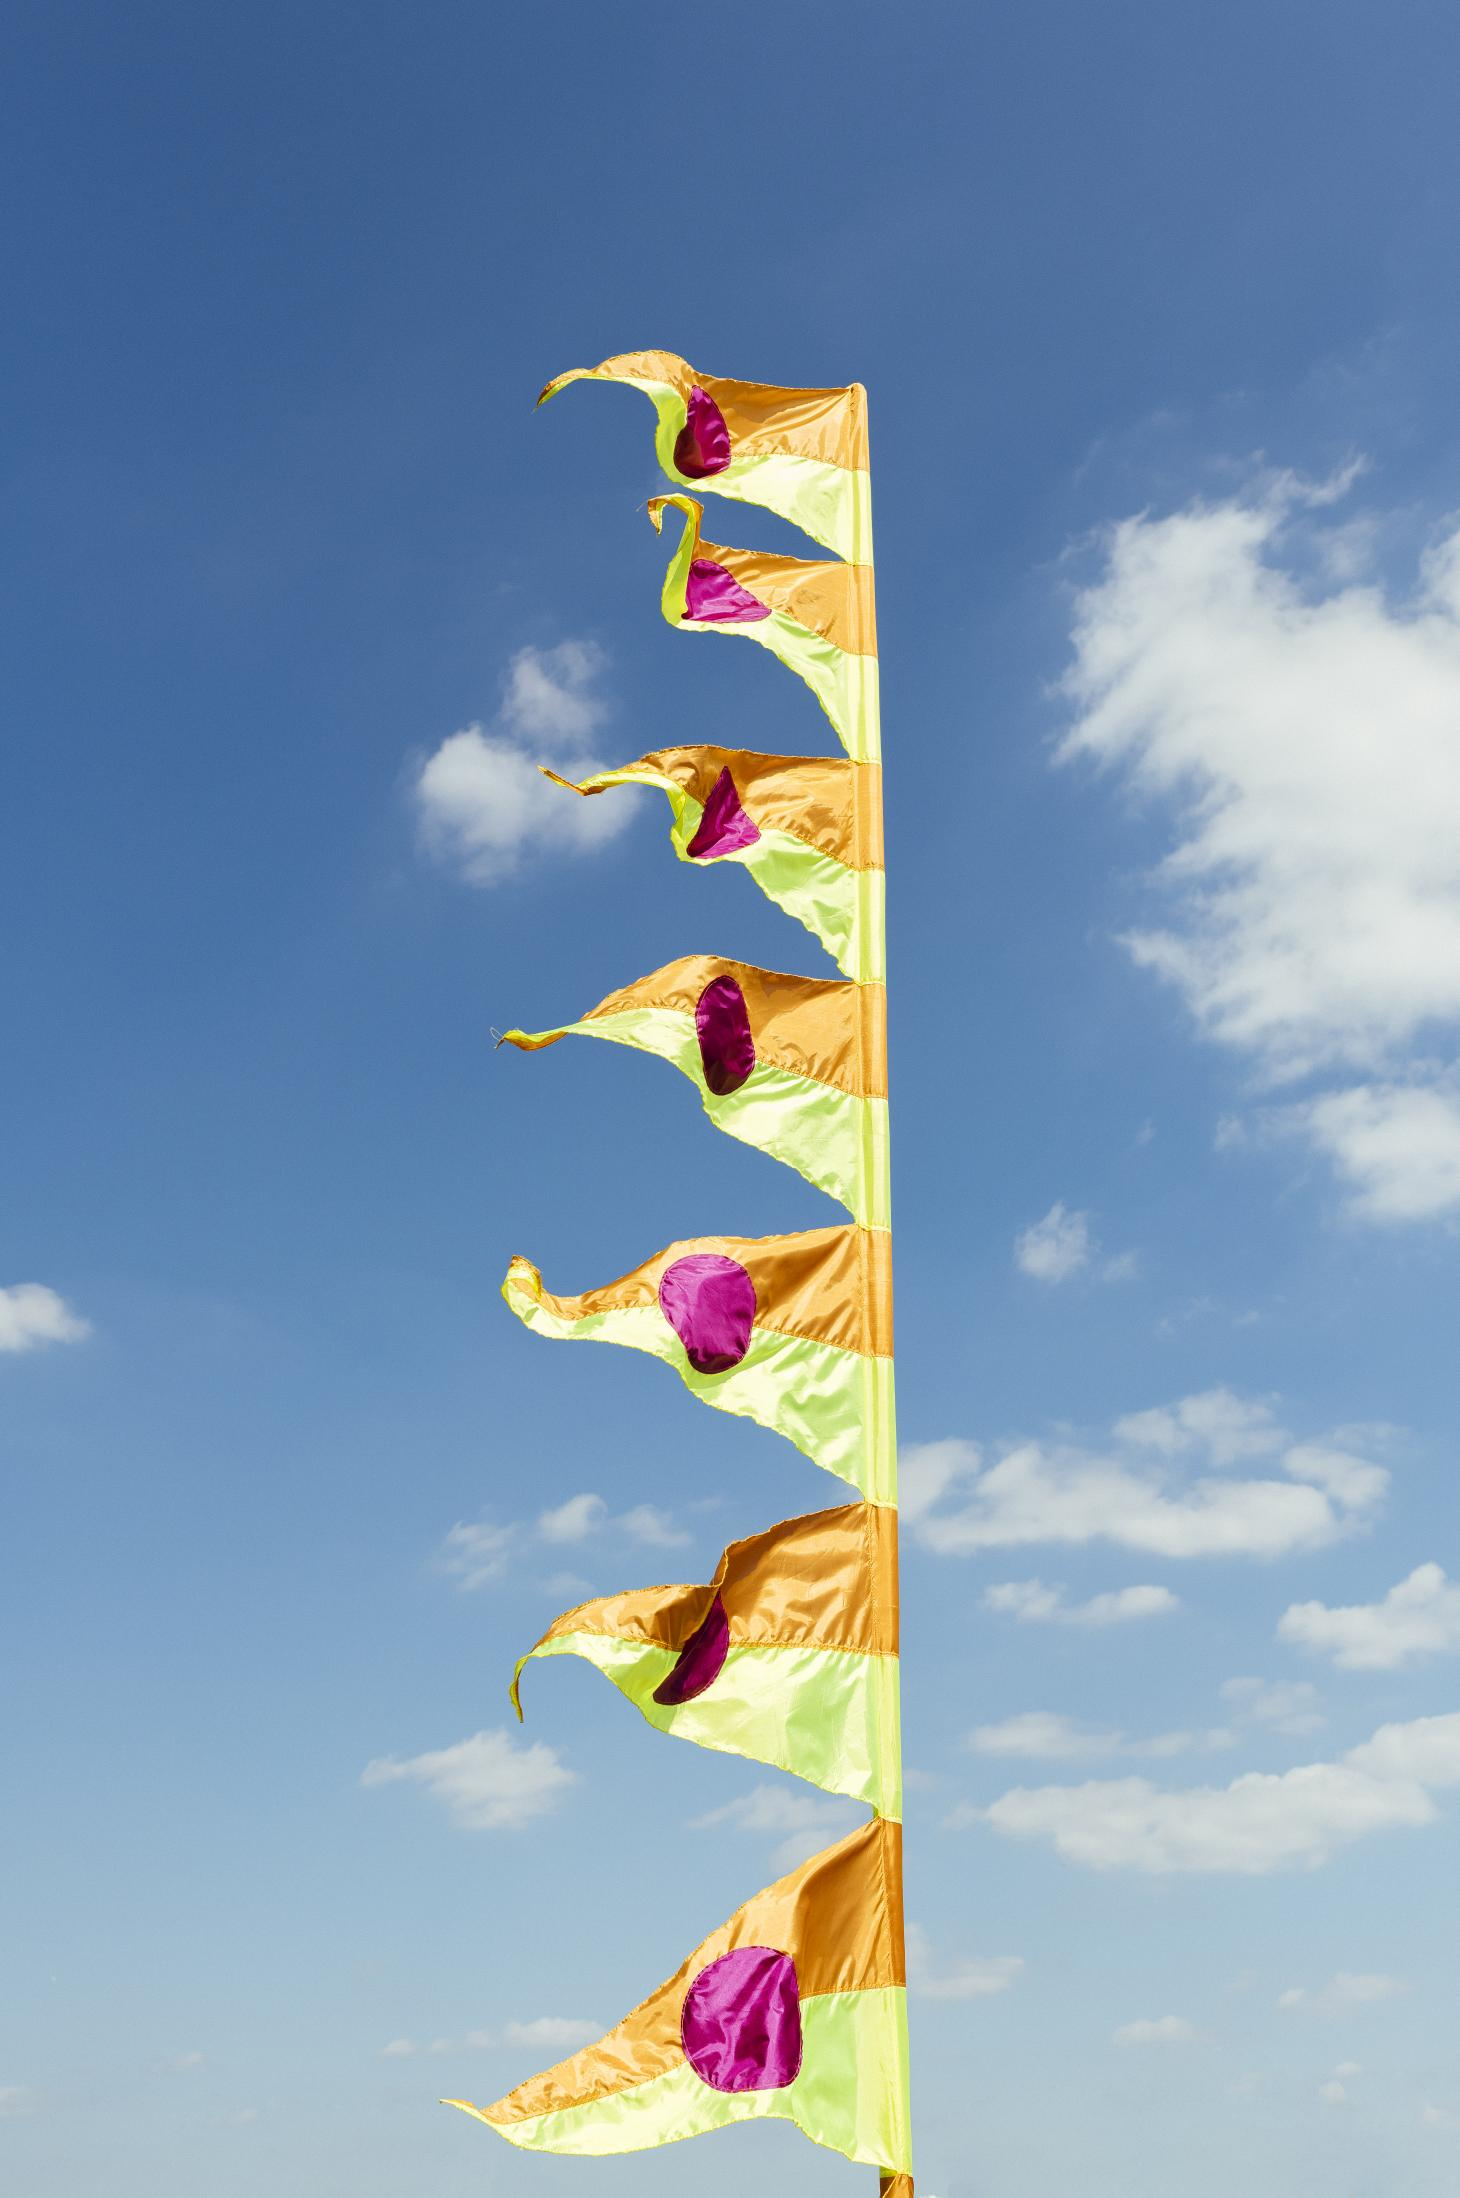 A colourful flag photographed against the blue sky, created by Yinka Ilori for Greenwich Peninsula